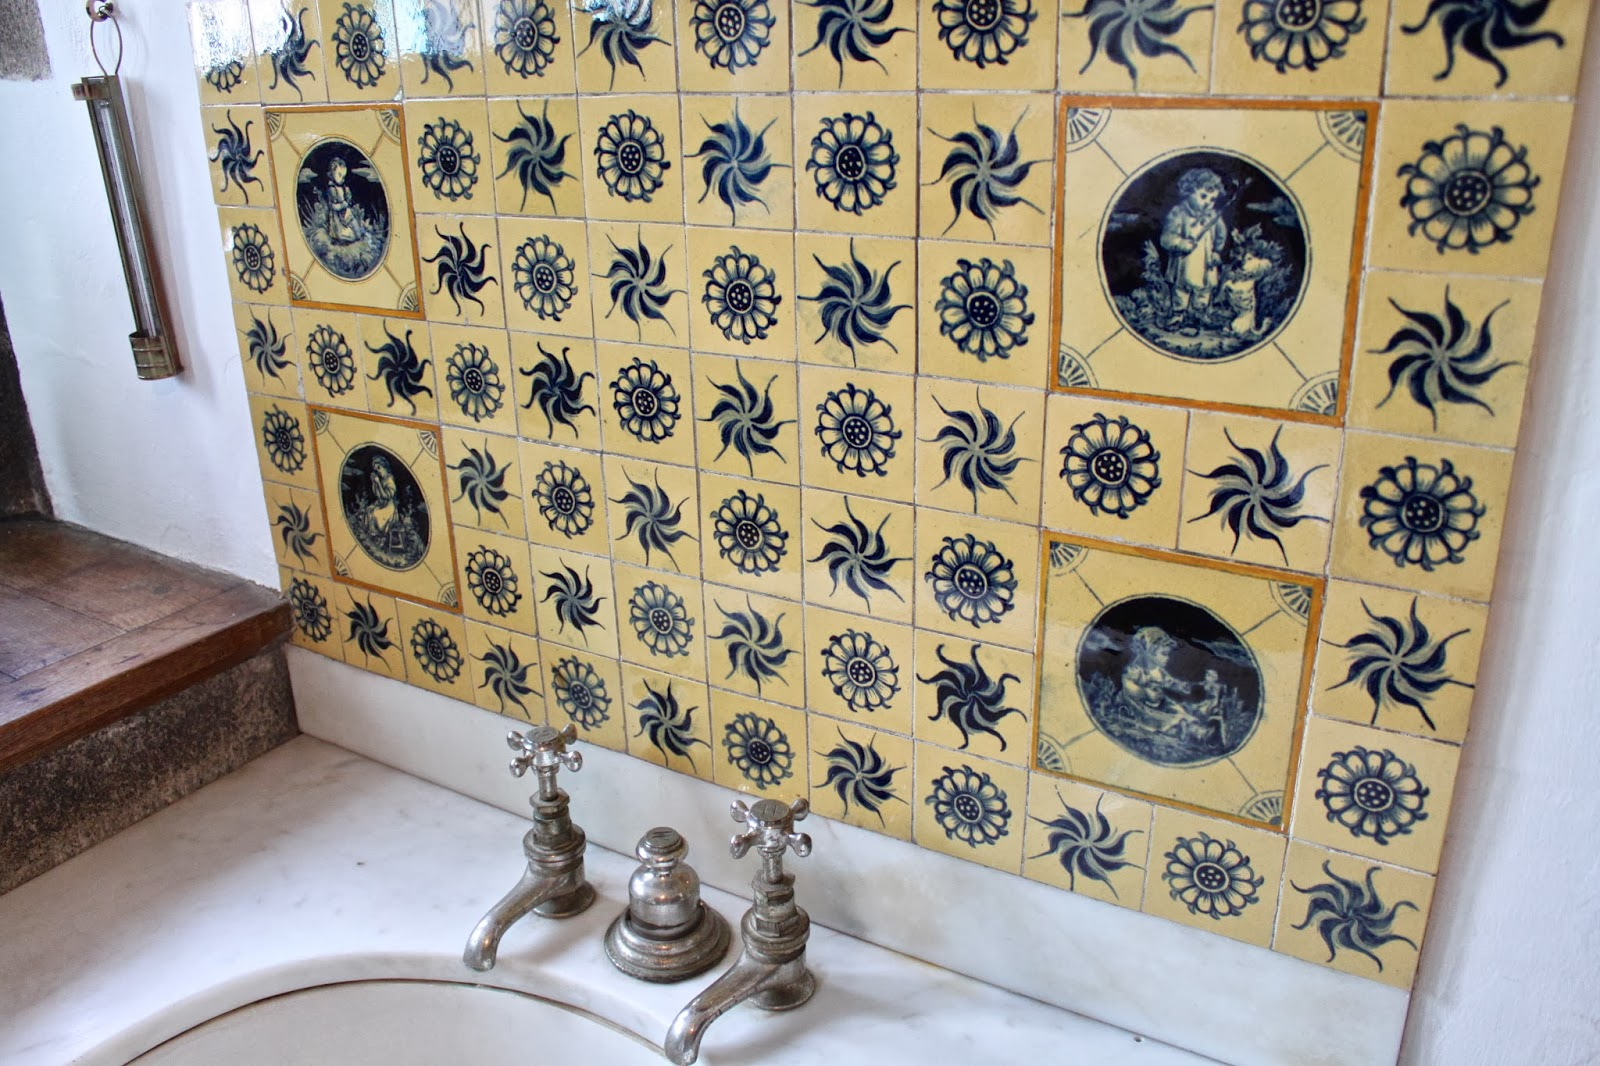 Castle Drogo, bathroom tiles, 1920s